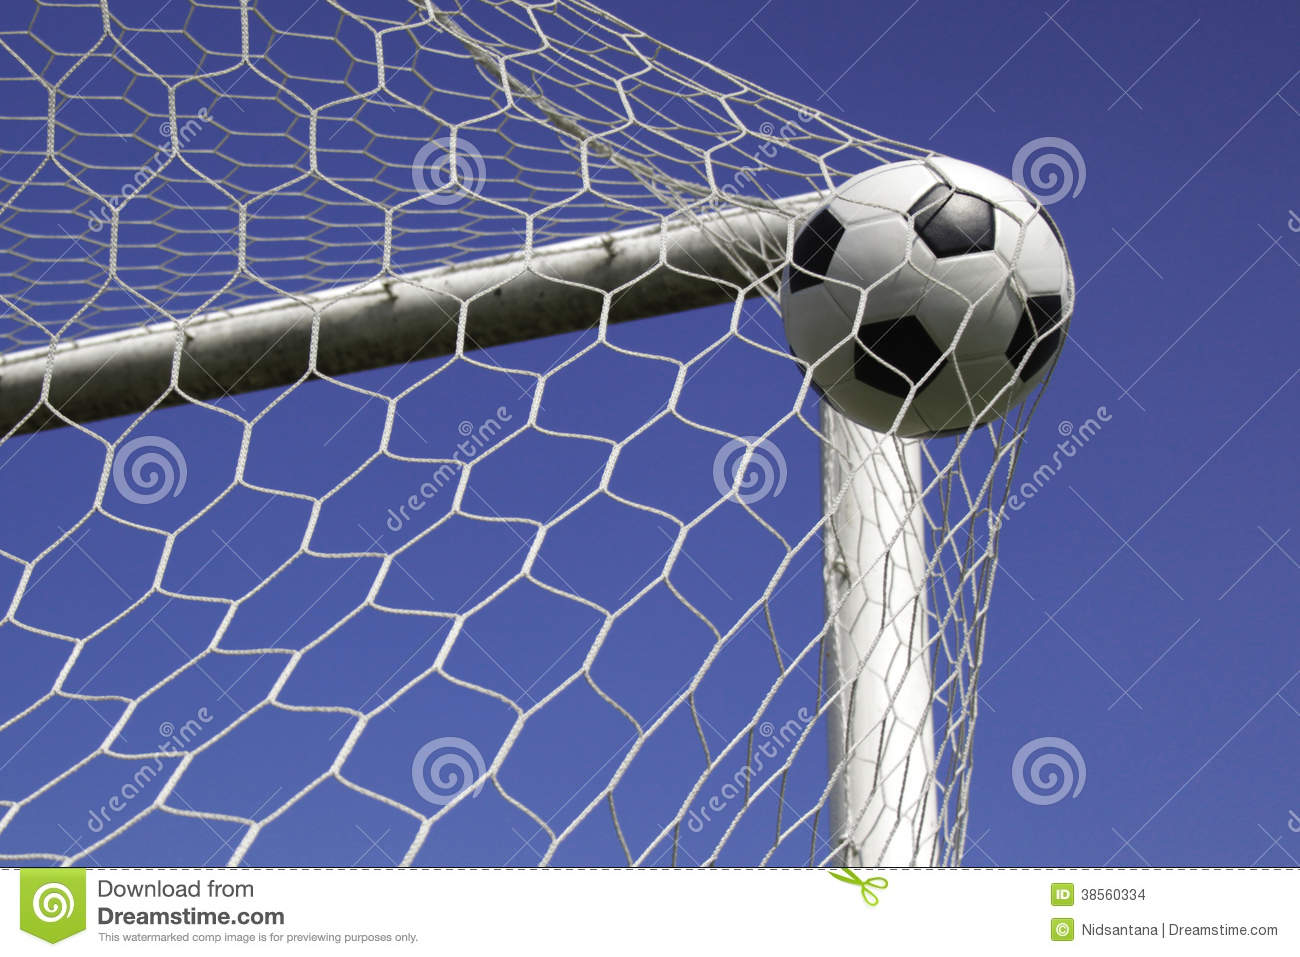 Soccer Football On Green Field With Blue Sky Background: Soccer Ball In Net Goal. Stock Images